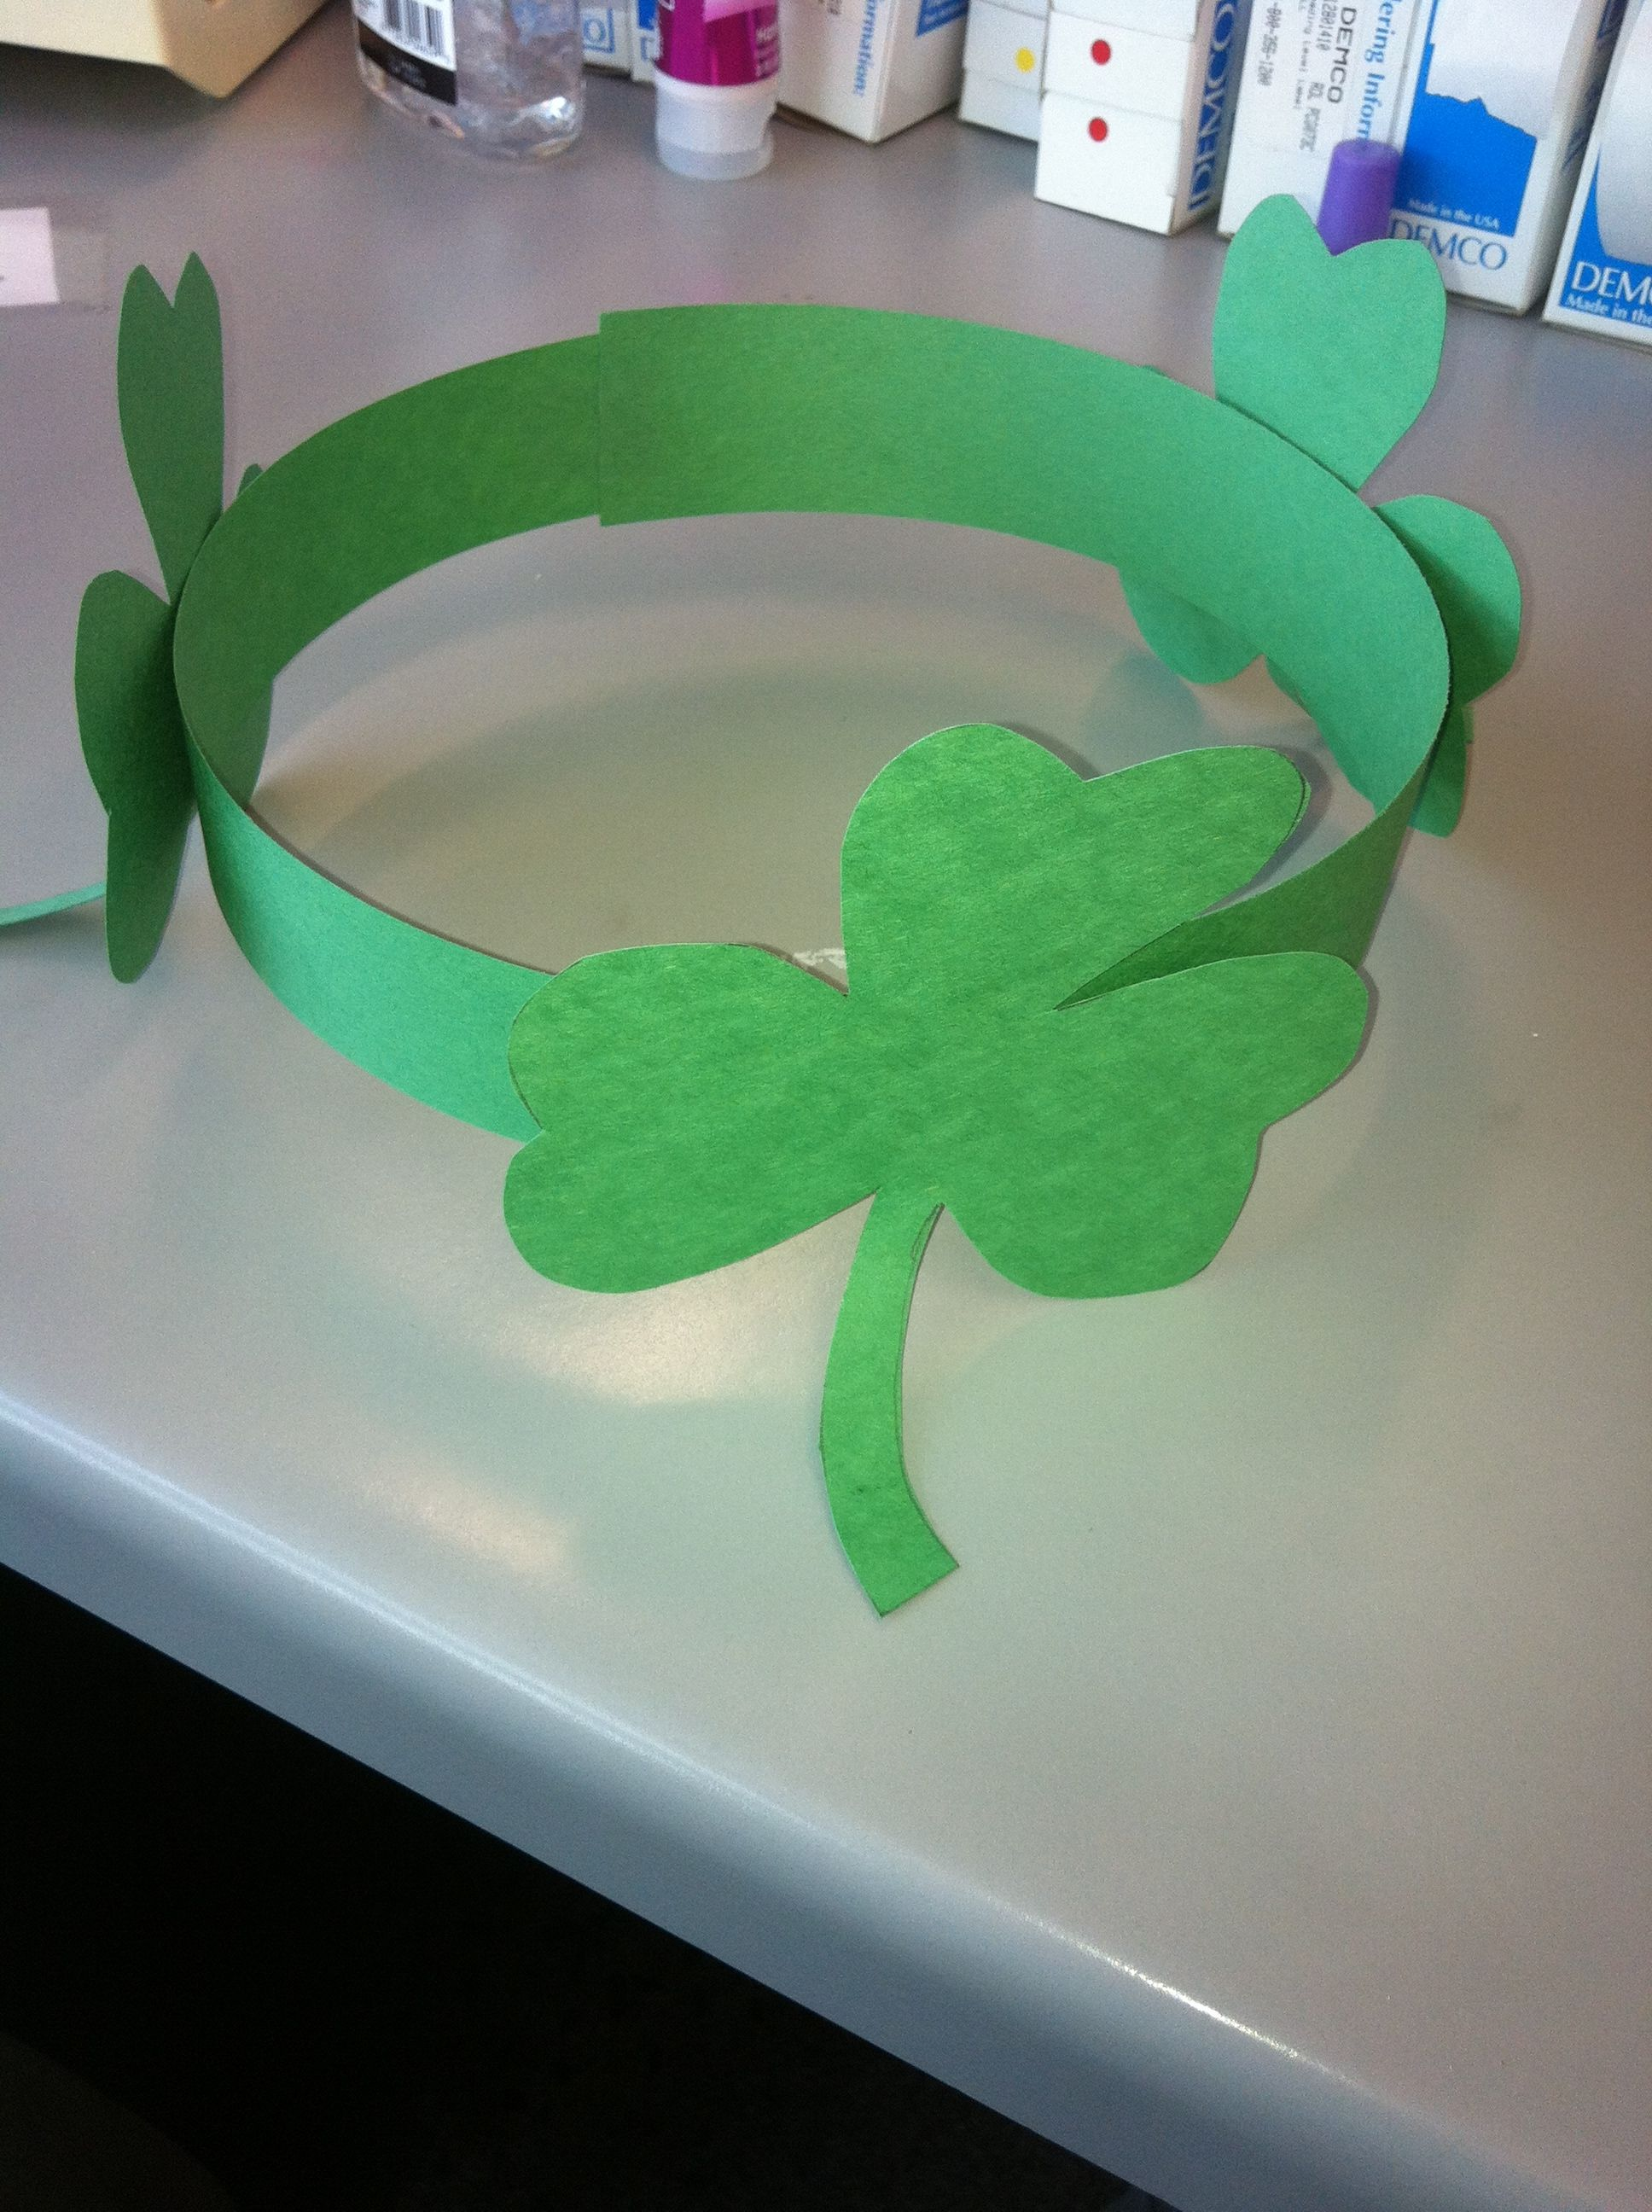 St patricks day preschool crafts - St Patricks Day Crafts For Kids To Make Yourself A Shamrock